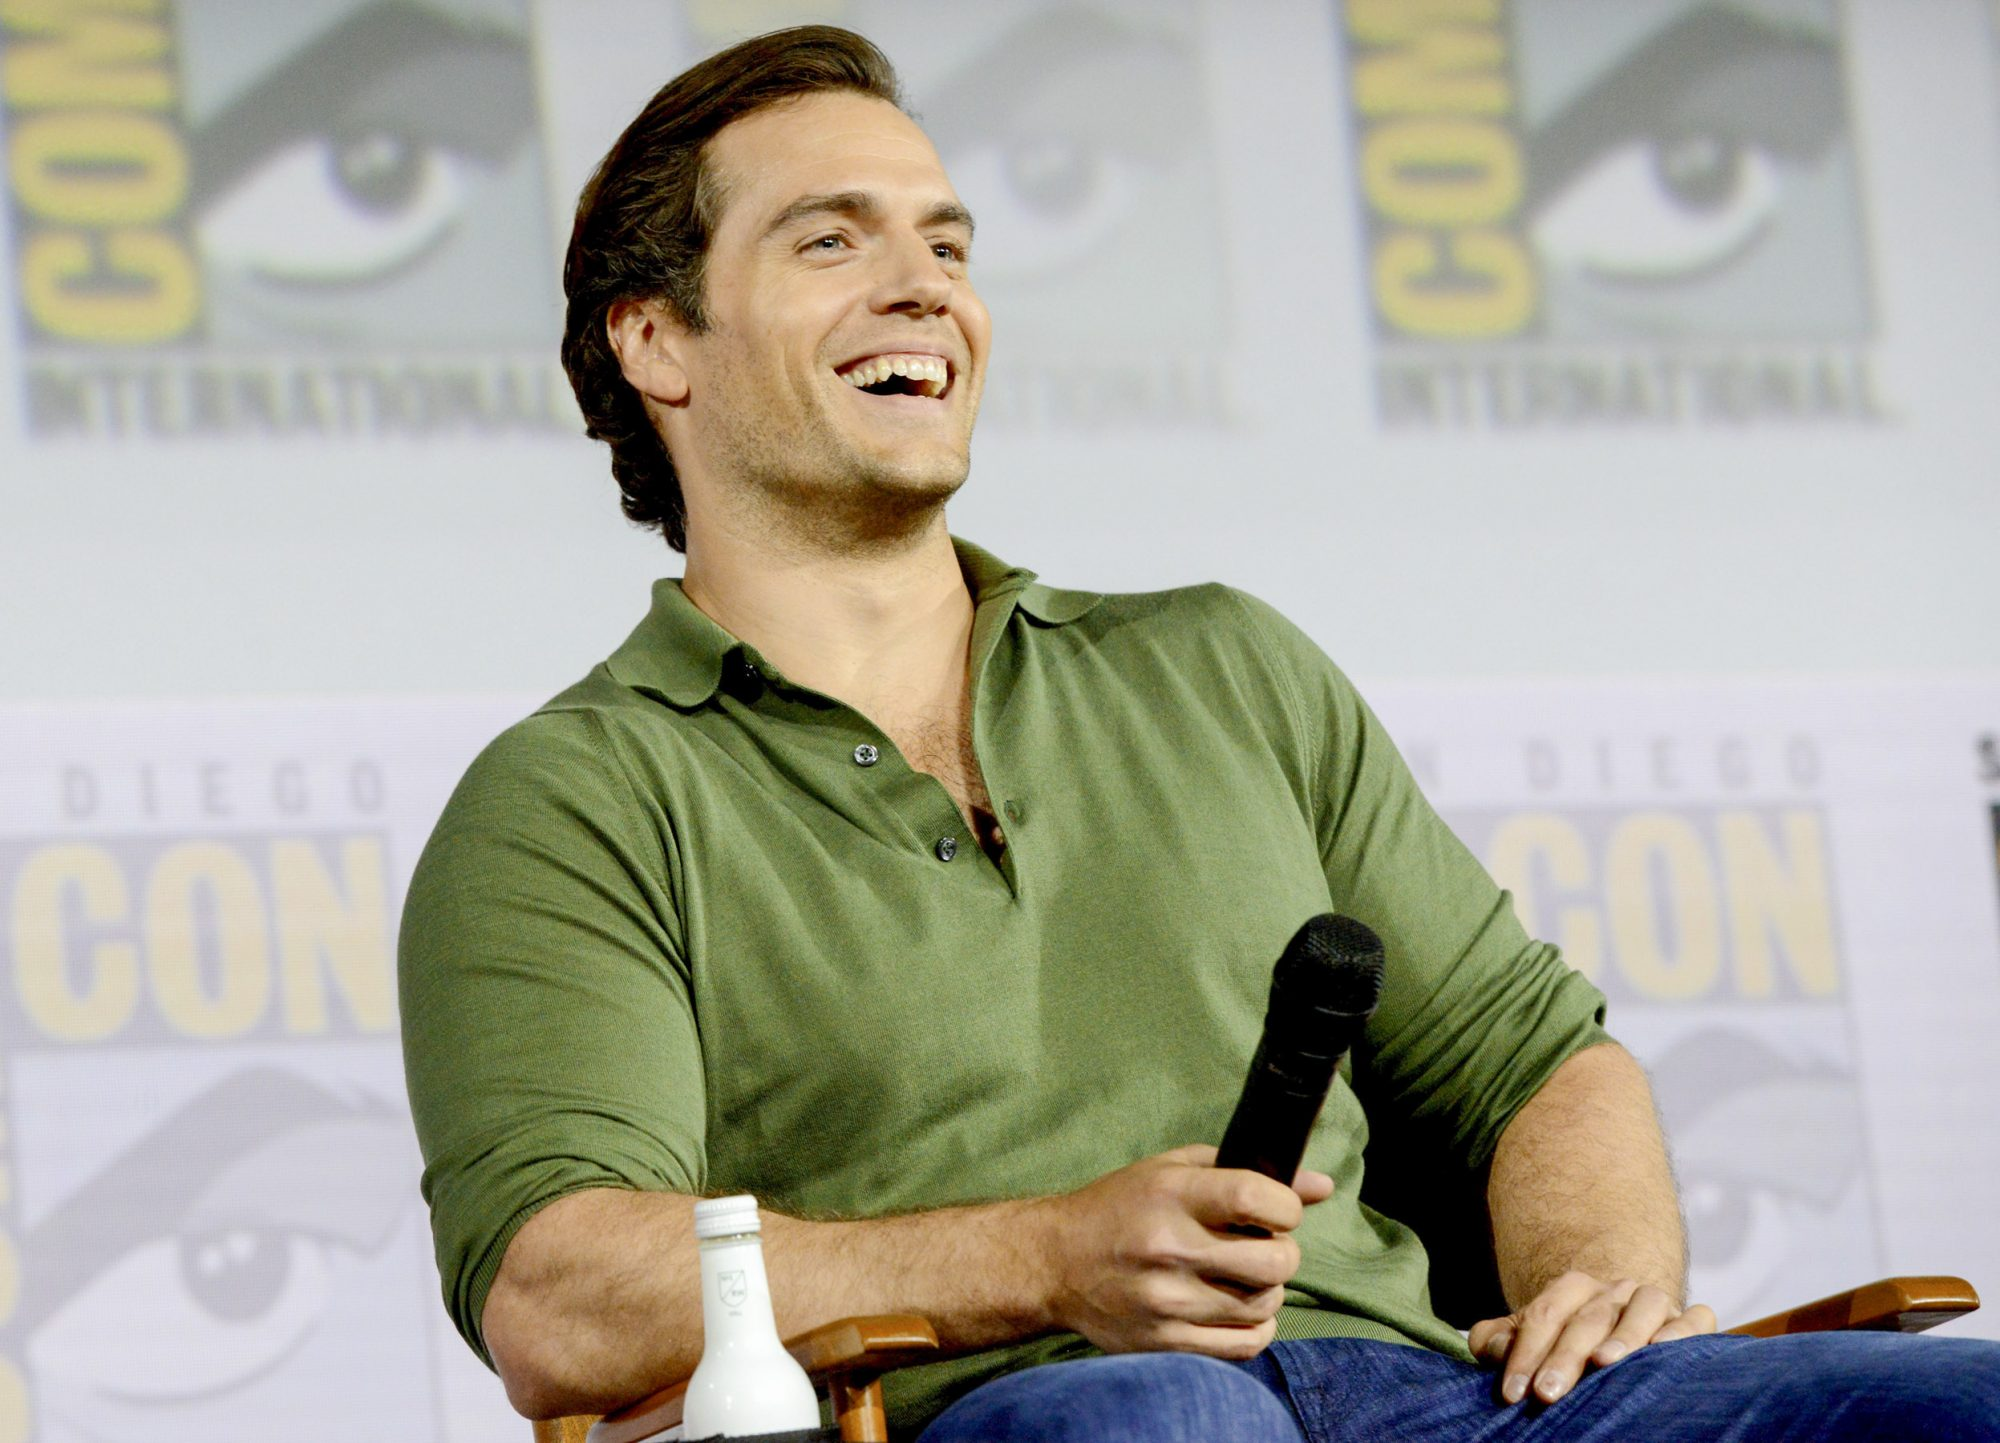 """SAN DIEGO, CALIFORNIA - JULY 19: Henry Cavill attends """"The Witcher"""": A Netflix Original Series Panel during 2019 Comic-Con International at San Diego Convention Center on July 19, 2019 in San Diego, California. (Photo by Albert L. Ortega/Getty Images)"""